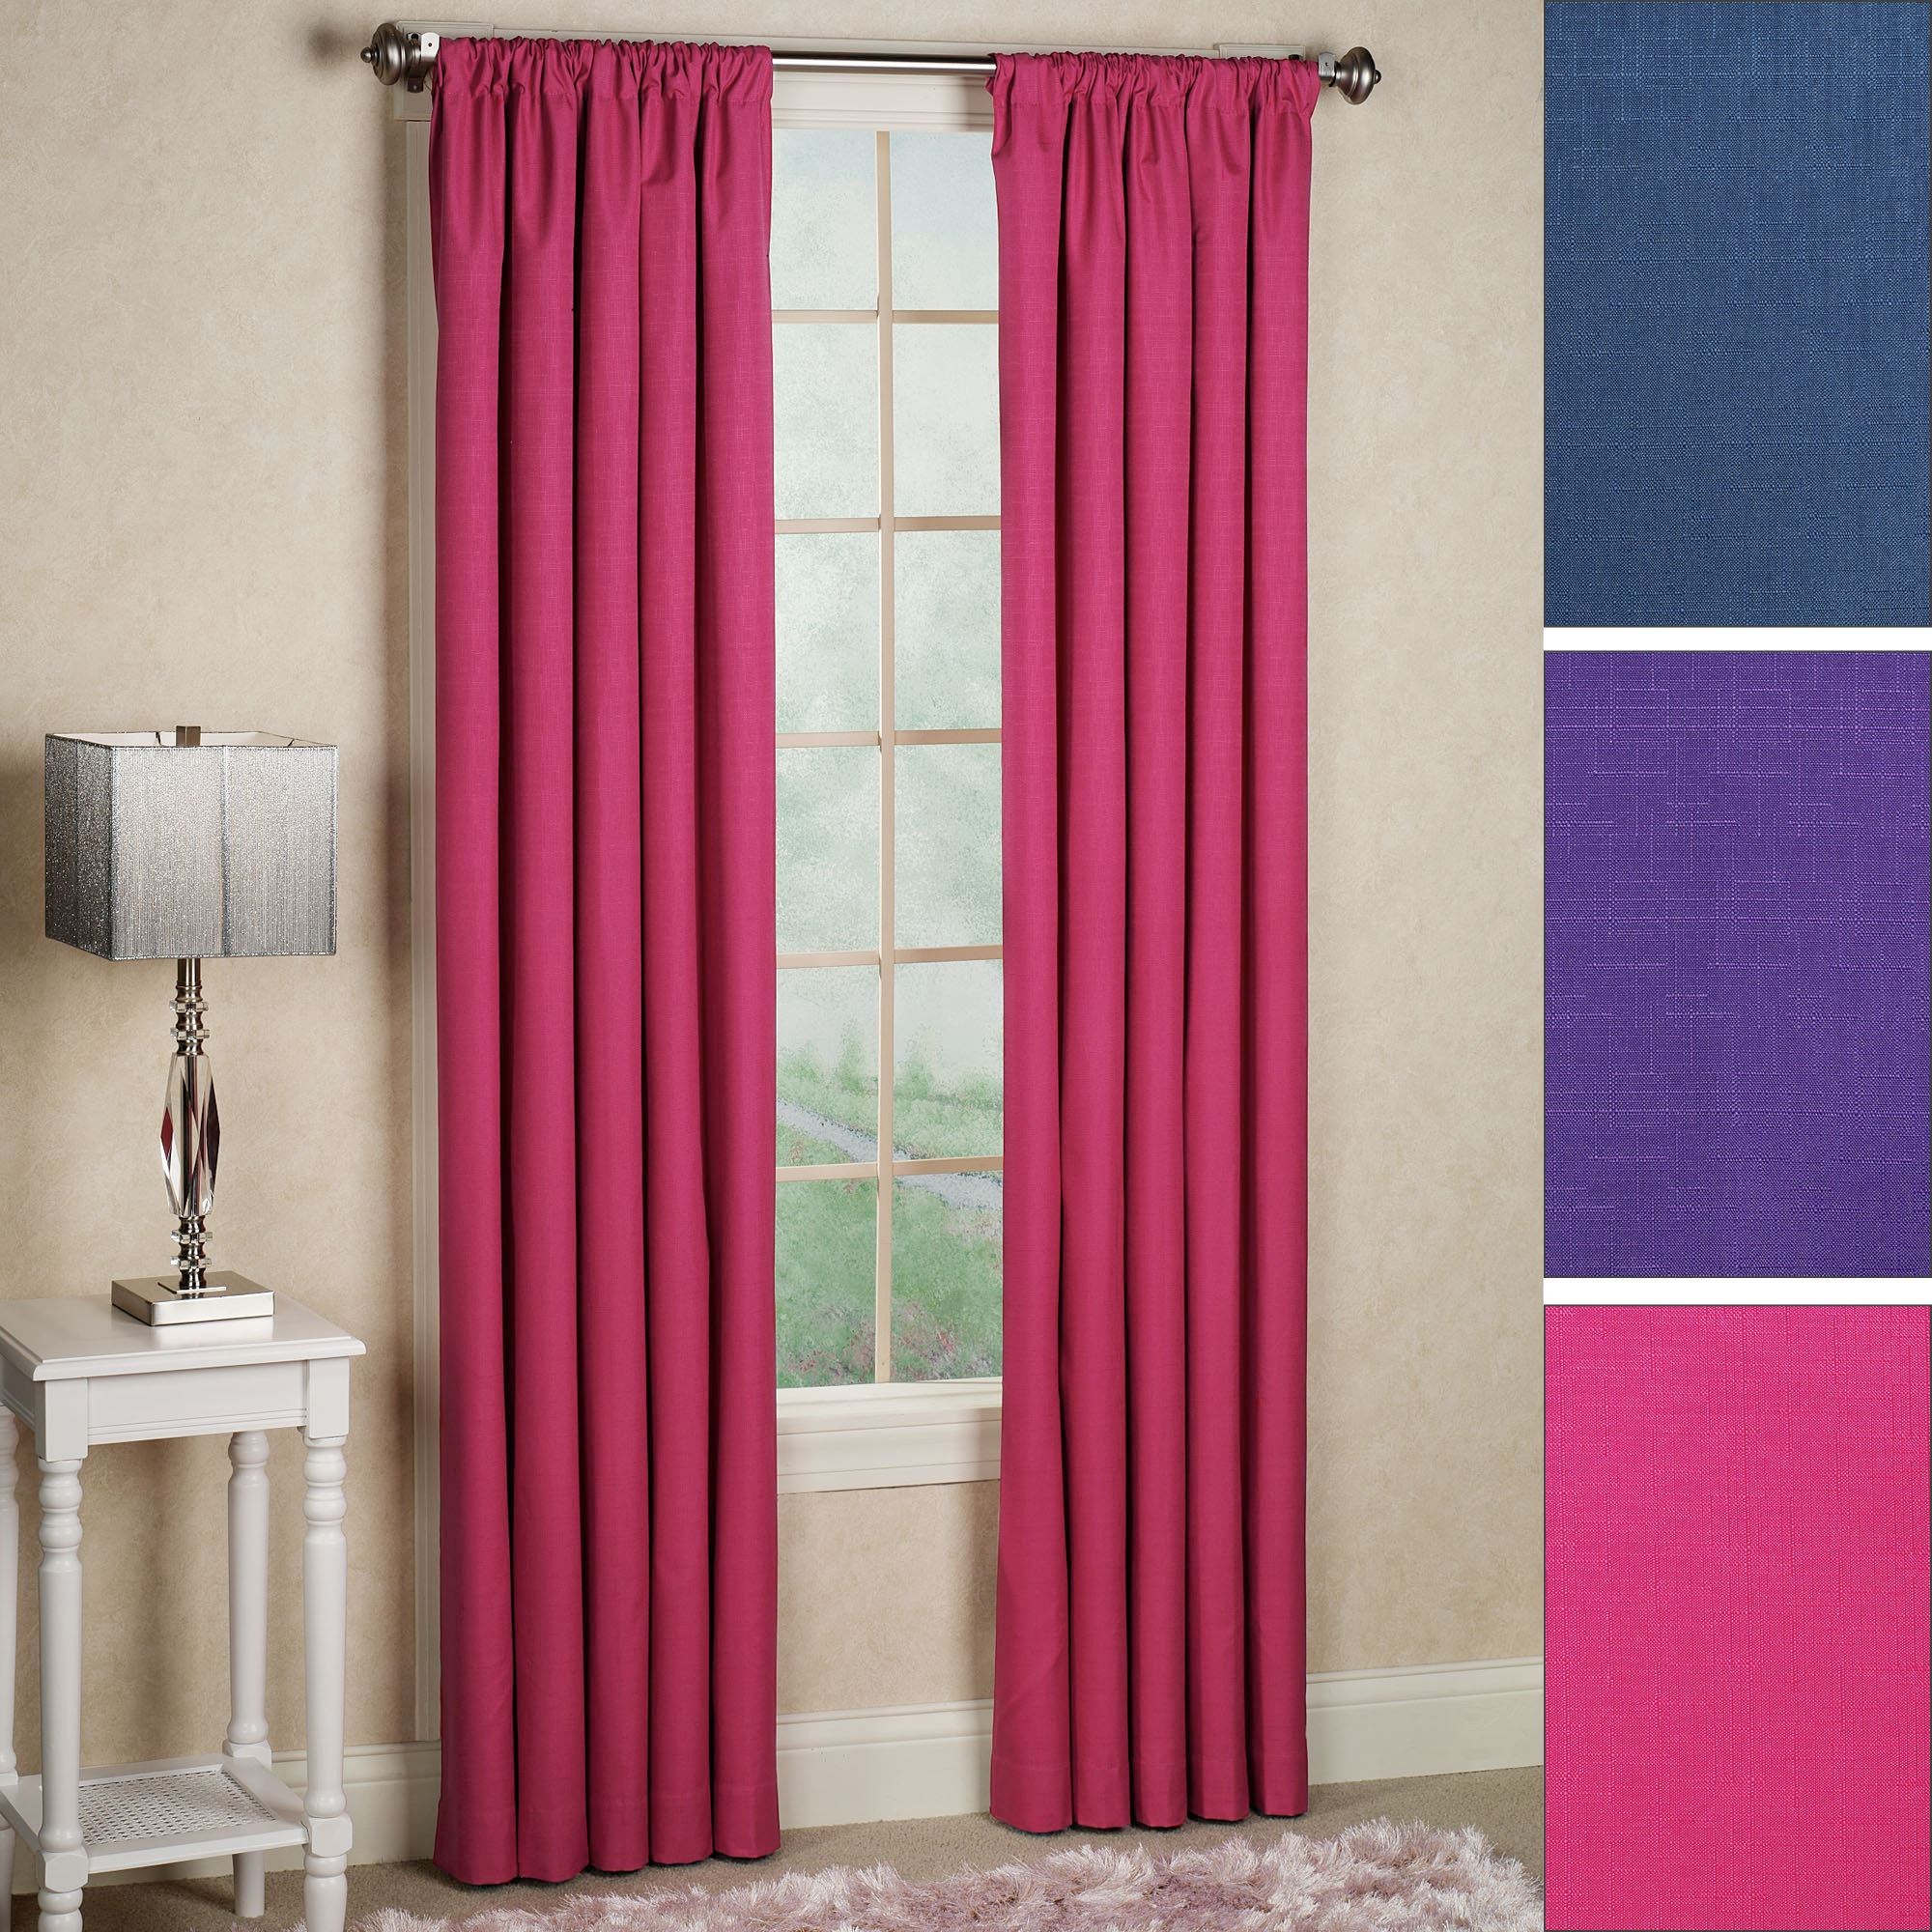 Kendall Bright Thermaback(Tm) Blackout Curtain Panel With Regard To Thermaback Blackout Window Curtains (Photo 8 of 30)